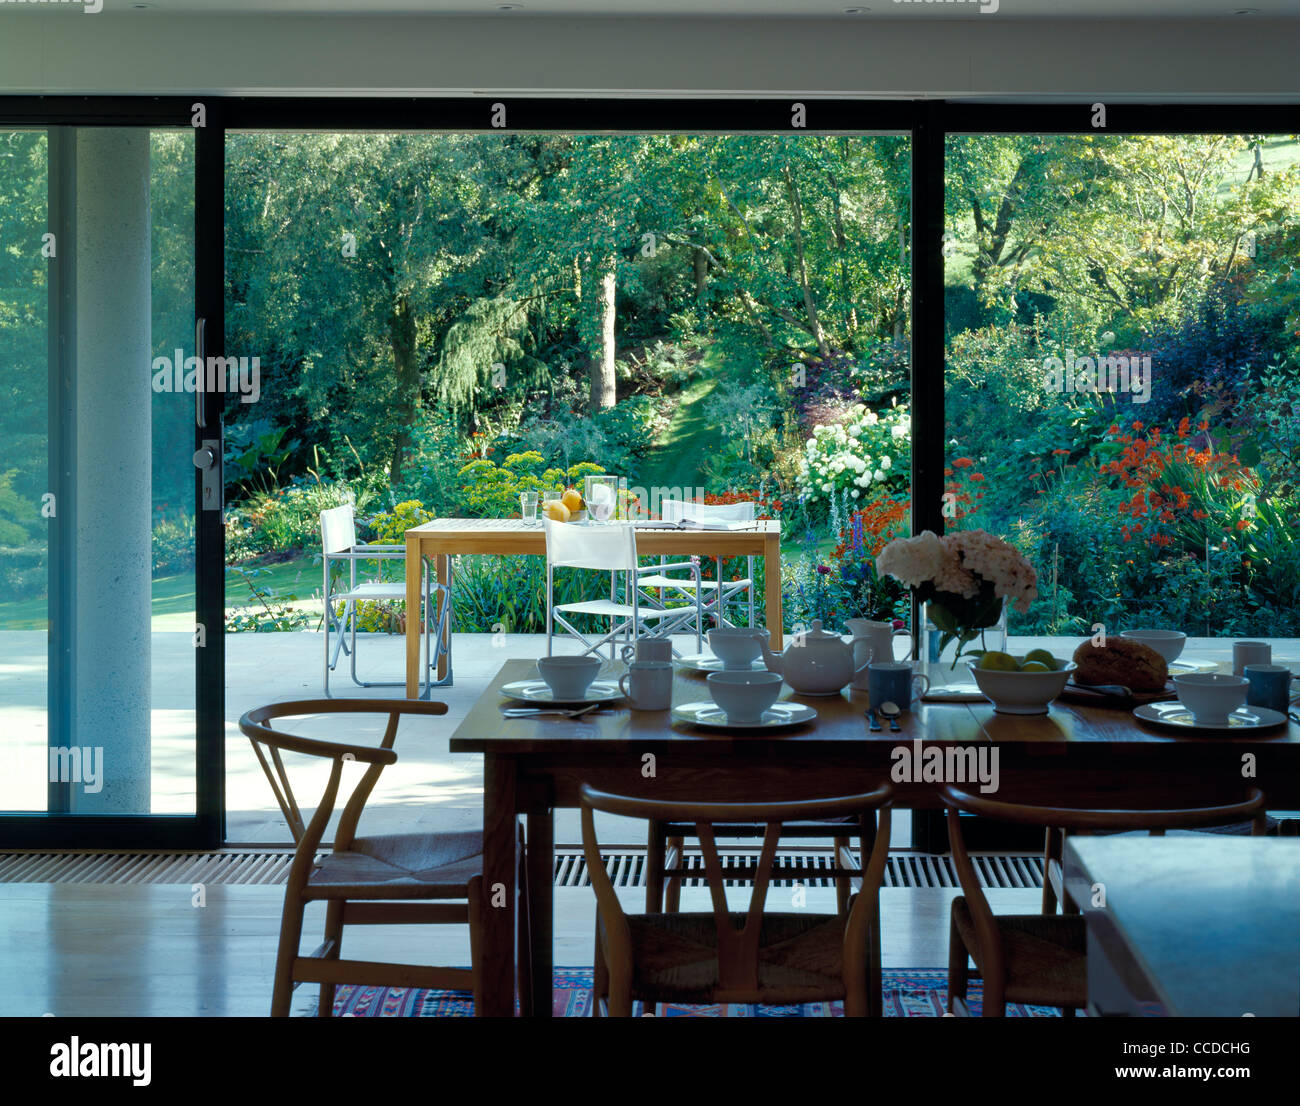 PRIVATE HOUSE KITCHEN DINING TABLE TO GARDEN TERRACE Stock Photo ...